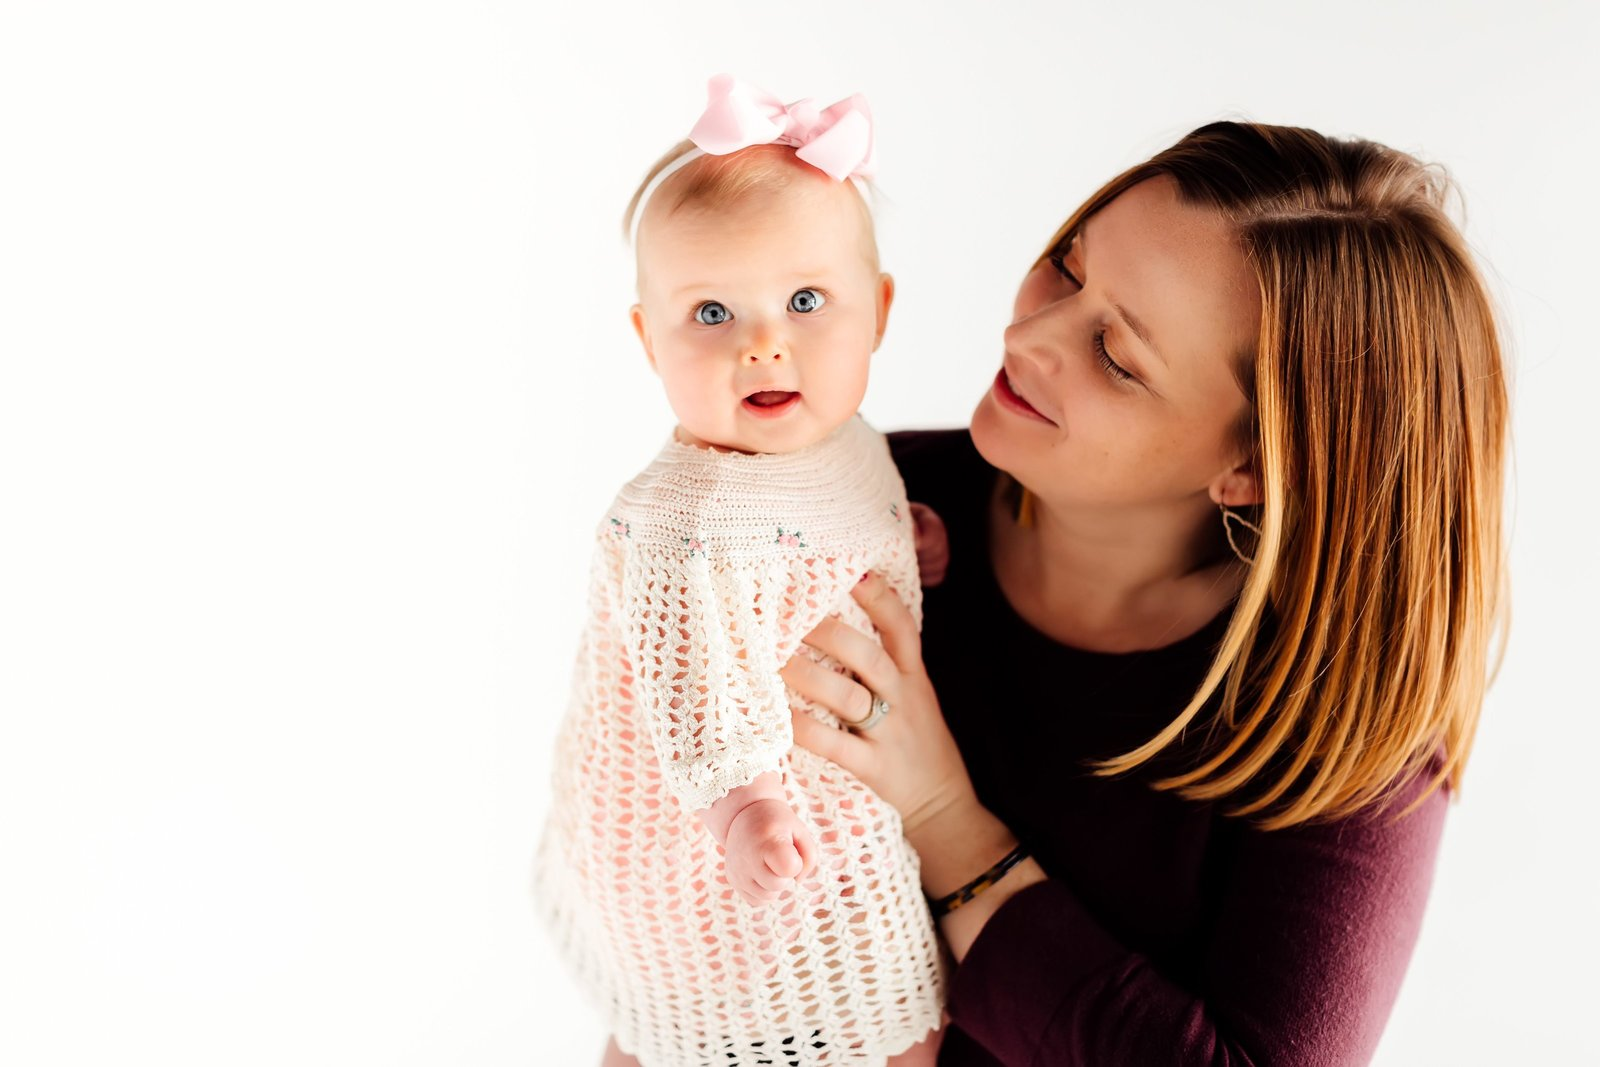 St_Louis_Baby_Photographer_Kelly_Laramore_Photography_77